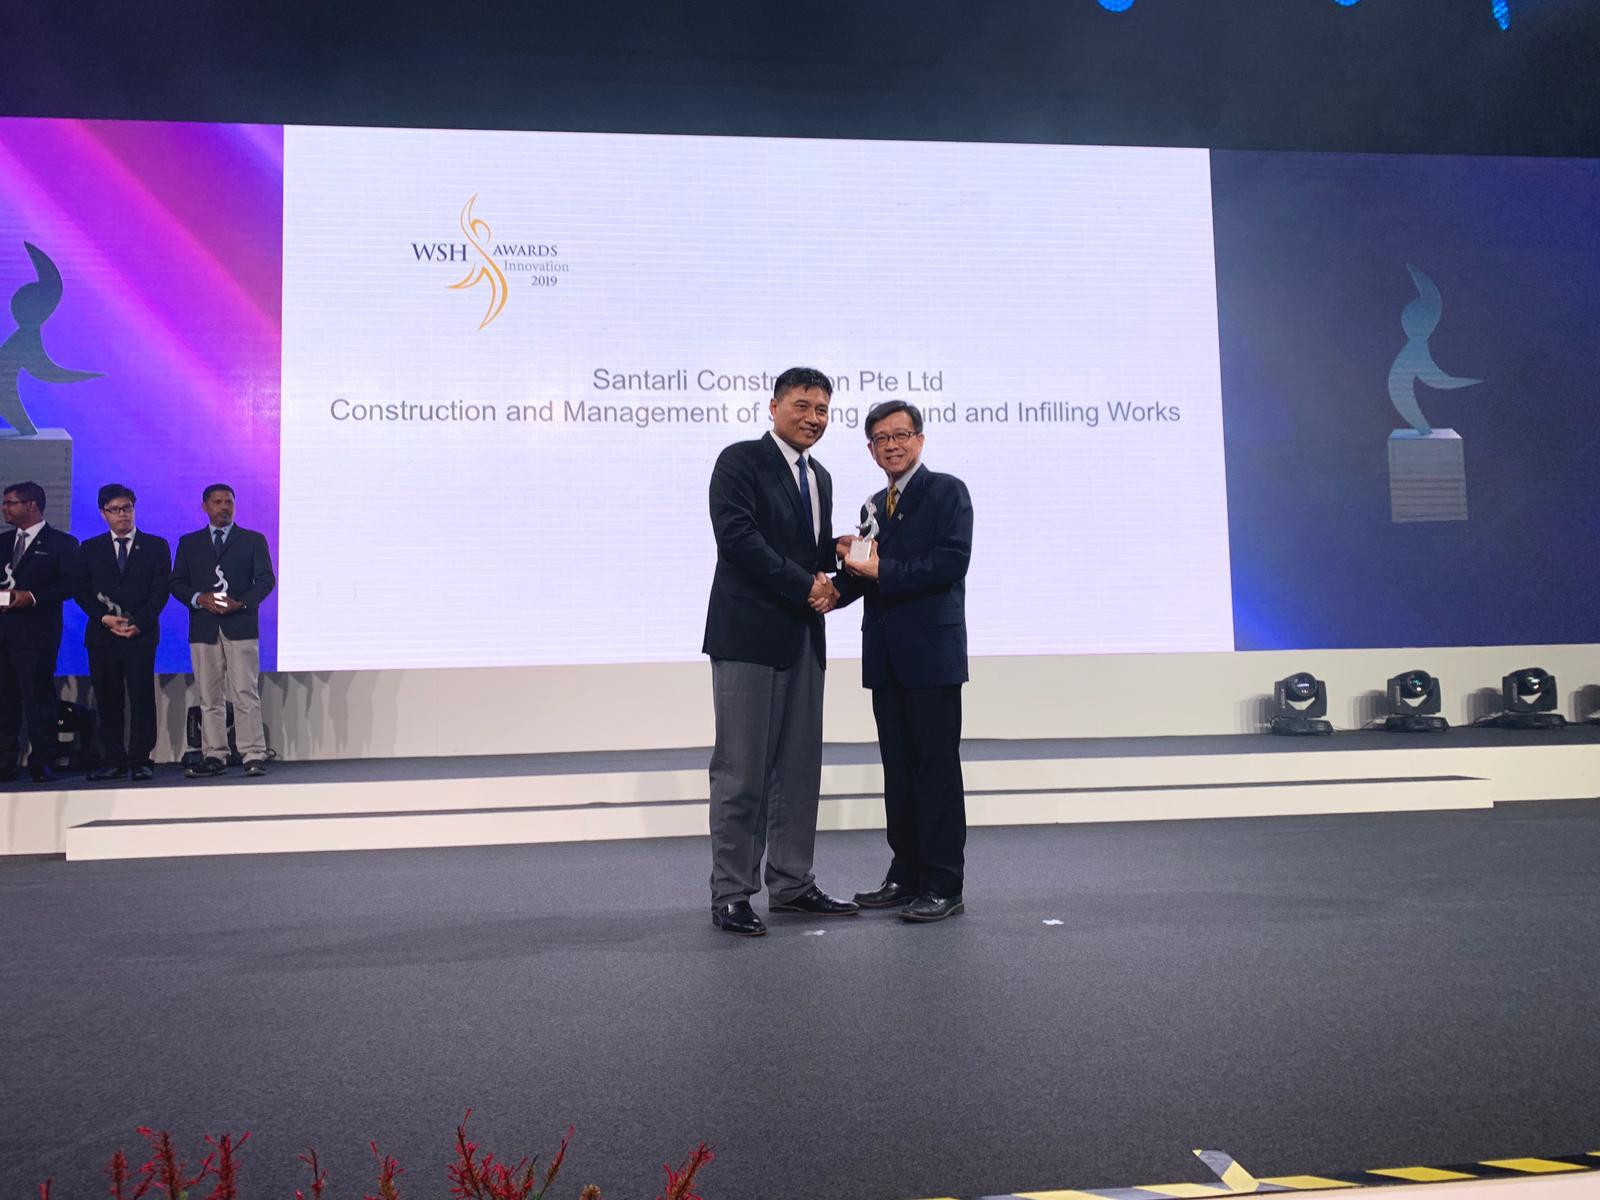 Santarli clinches the WSH Innovation Award 2019